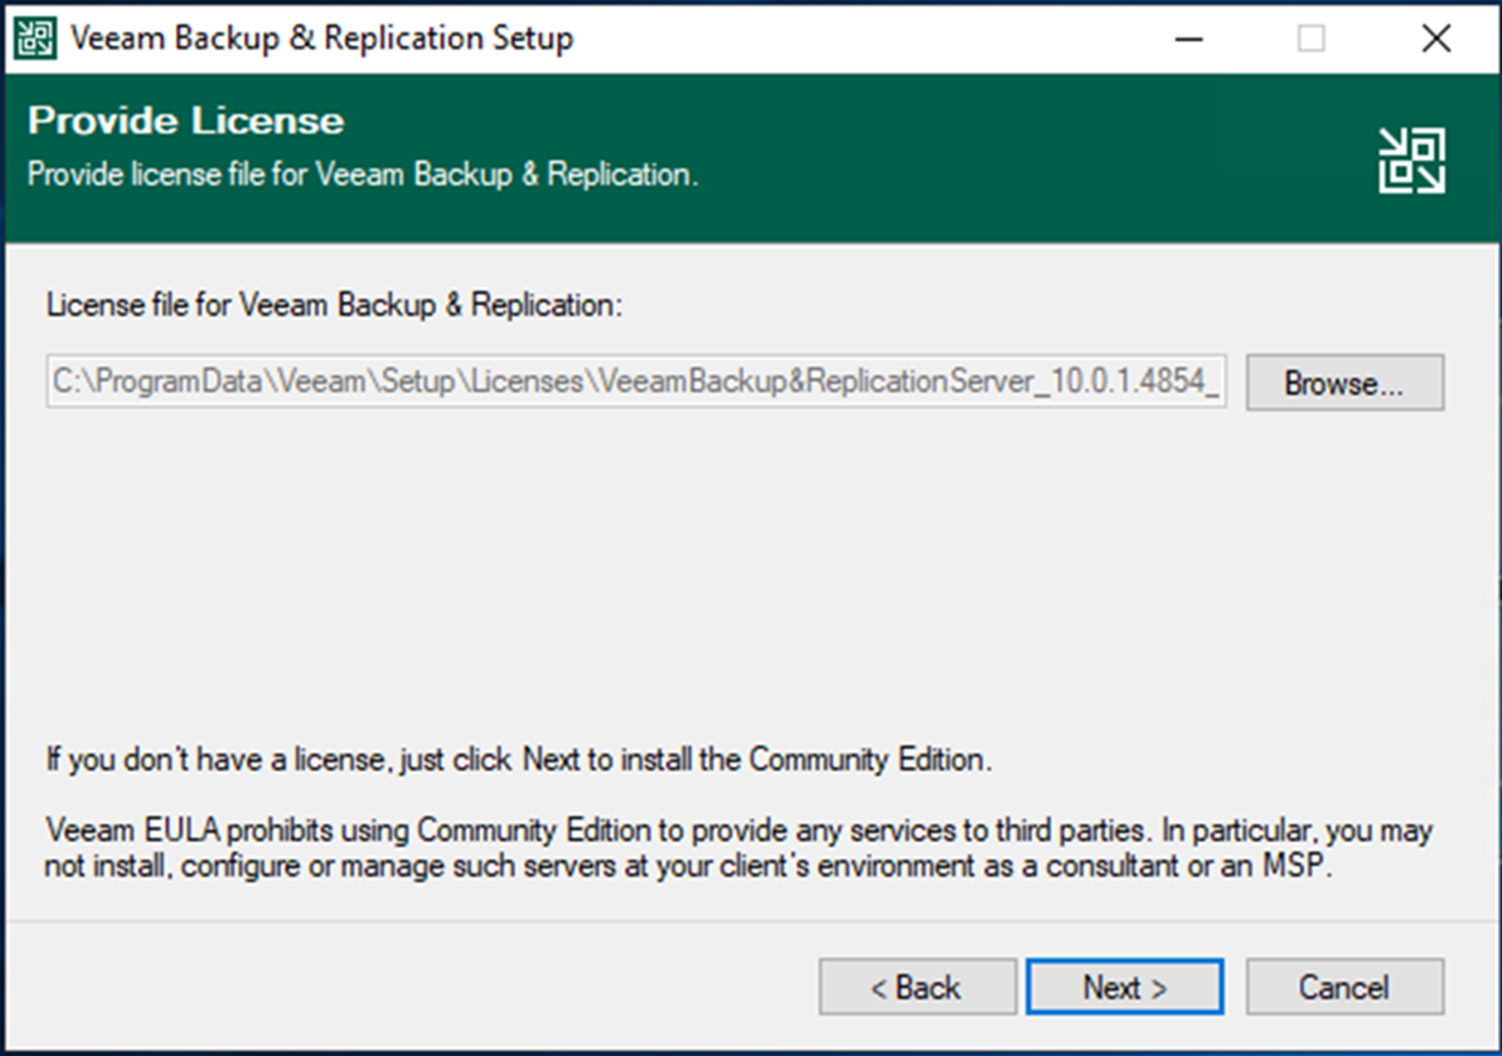 100320 1854 HowtoInstal10 - How to Install (Upgrade) Veeam Backup and Replication V10a #Veeam #VBR 10a #Hyper-V #WINDOWSERVER #Azure #AWS #NAS #VMWARE #vCloud #Azure Stack #Linux